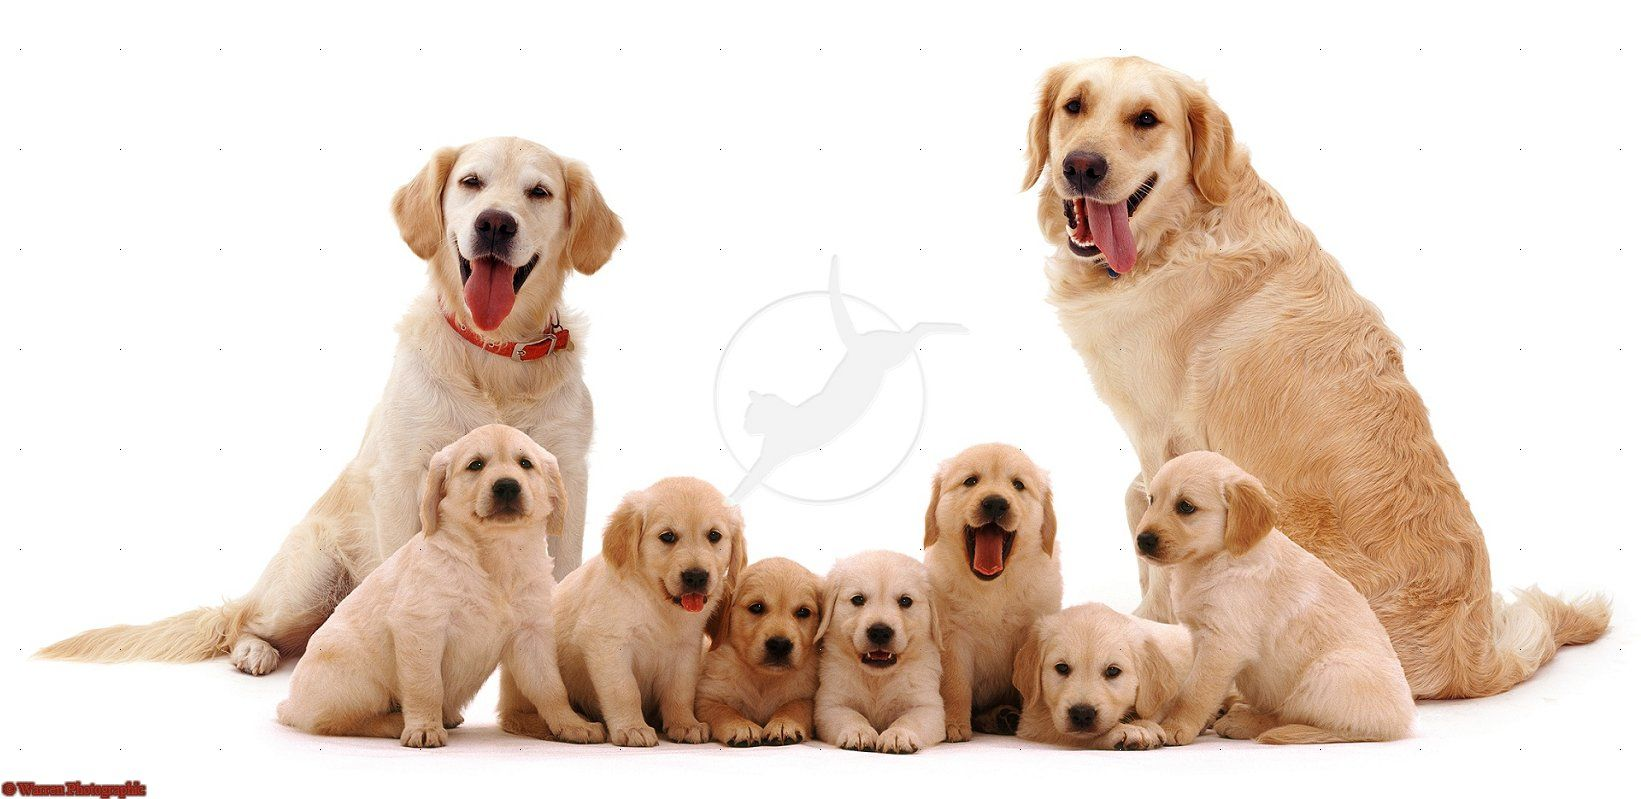 Google Image Result For Http Www Warrenphotographic Co Uk Photography Bigs 06465 Golden Retriever F Golden Retriever Family Golden Retriever Puppy Dog Photos